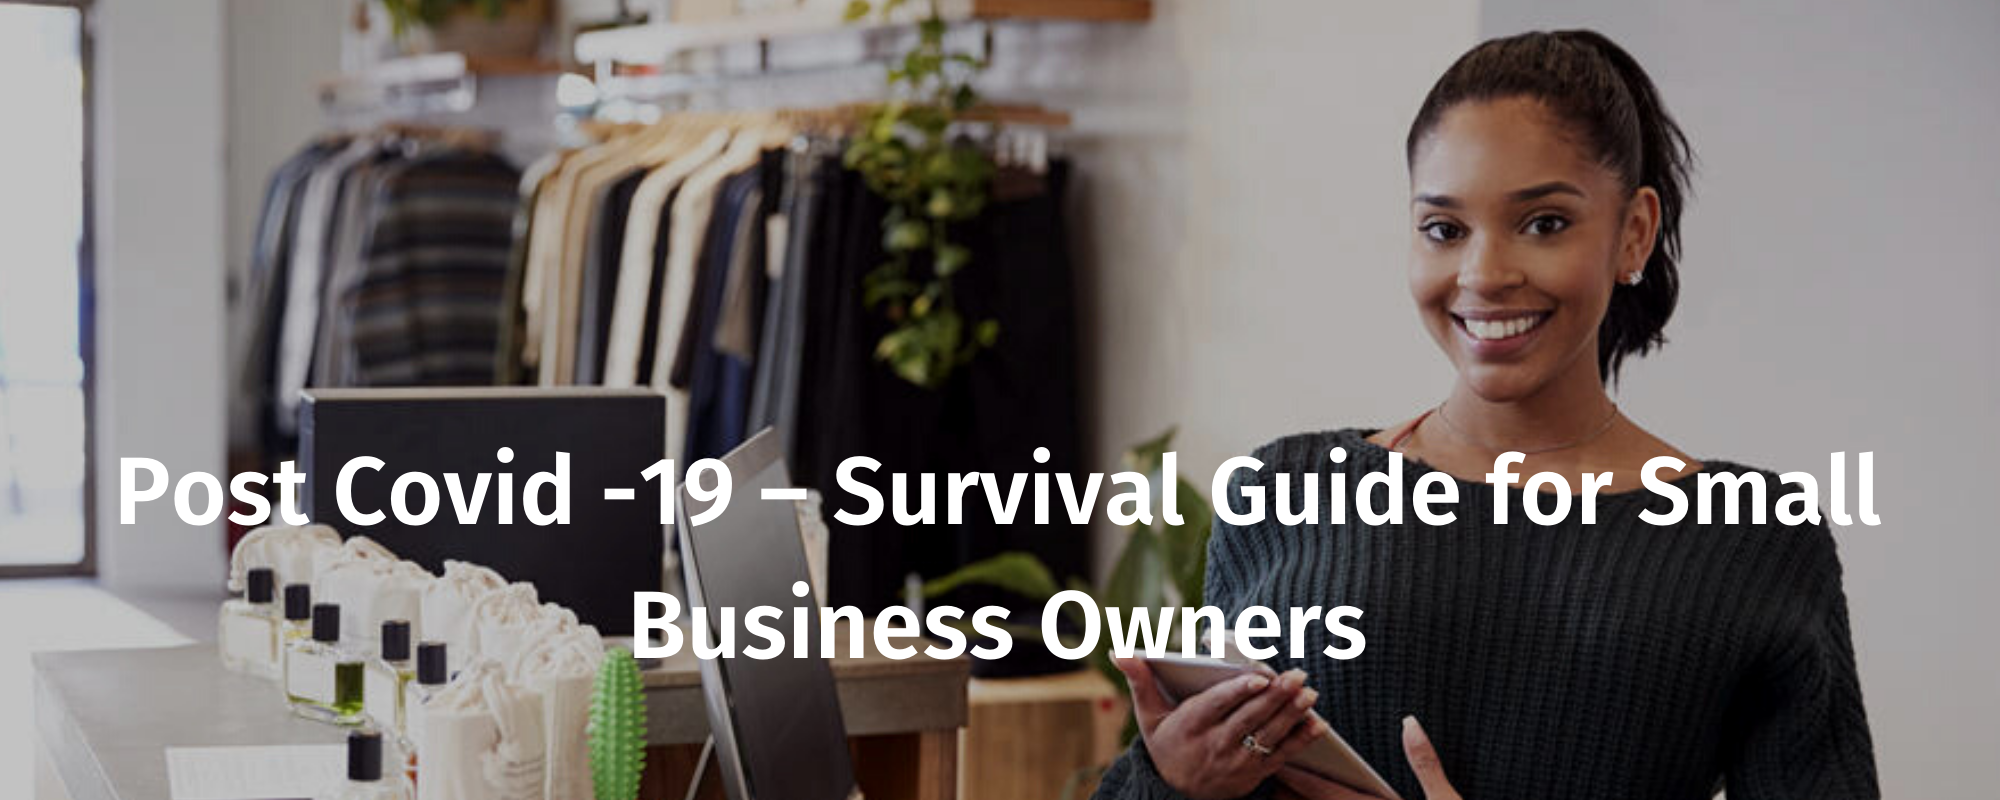 Post-COVID-19 Survival Guide For Small Business Owners